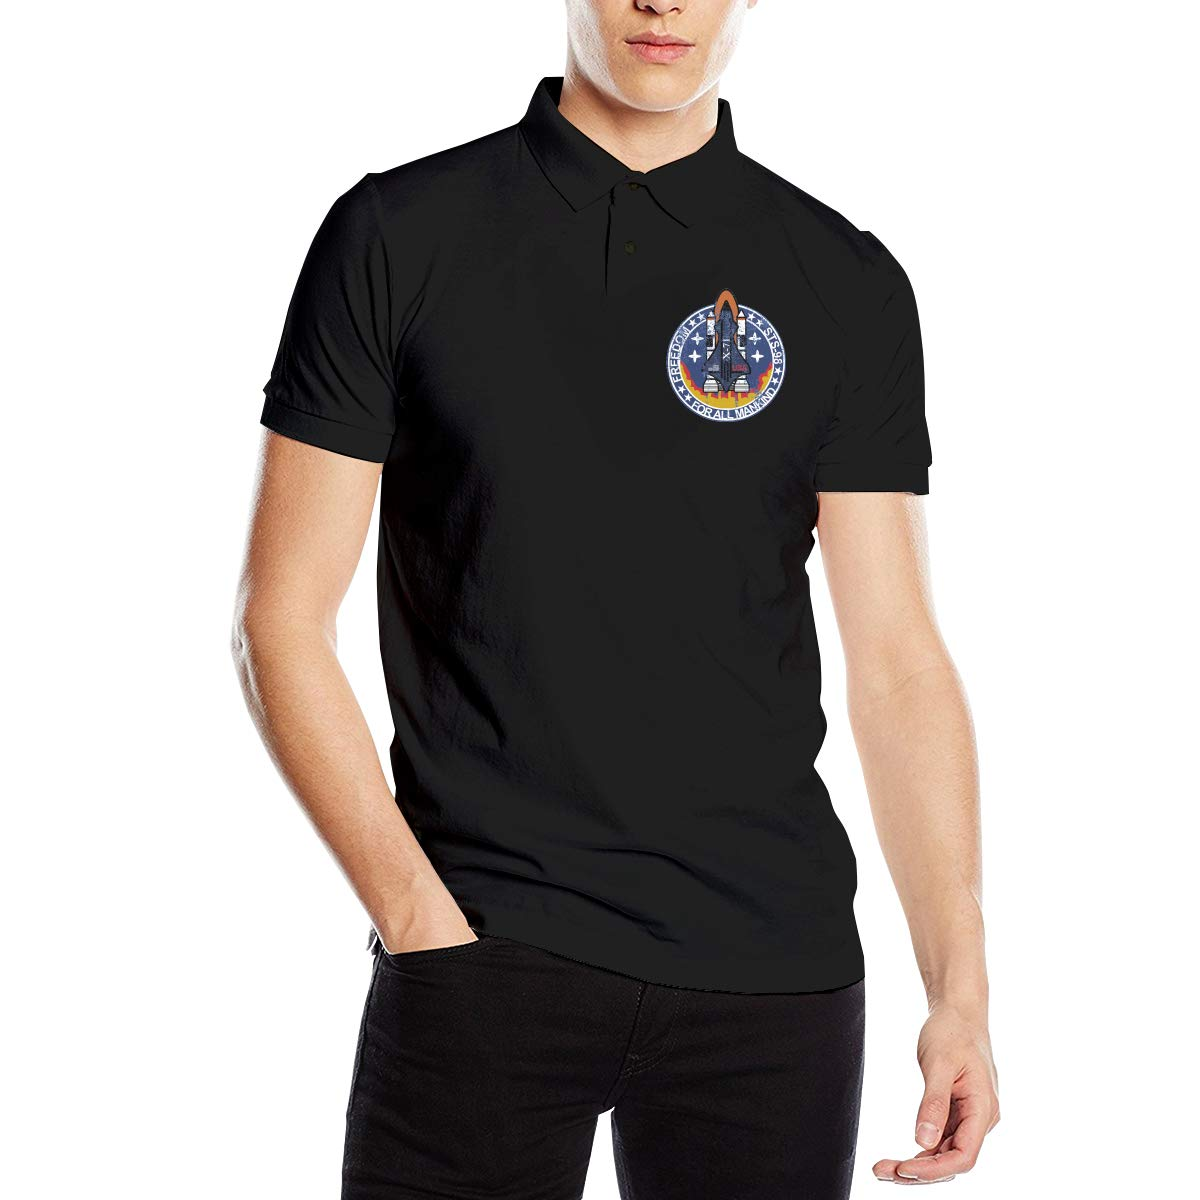 Geddon Mens Regular-Fit Cotton Polo Shirt Short Sleeve You Know And Good Arma